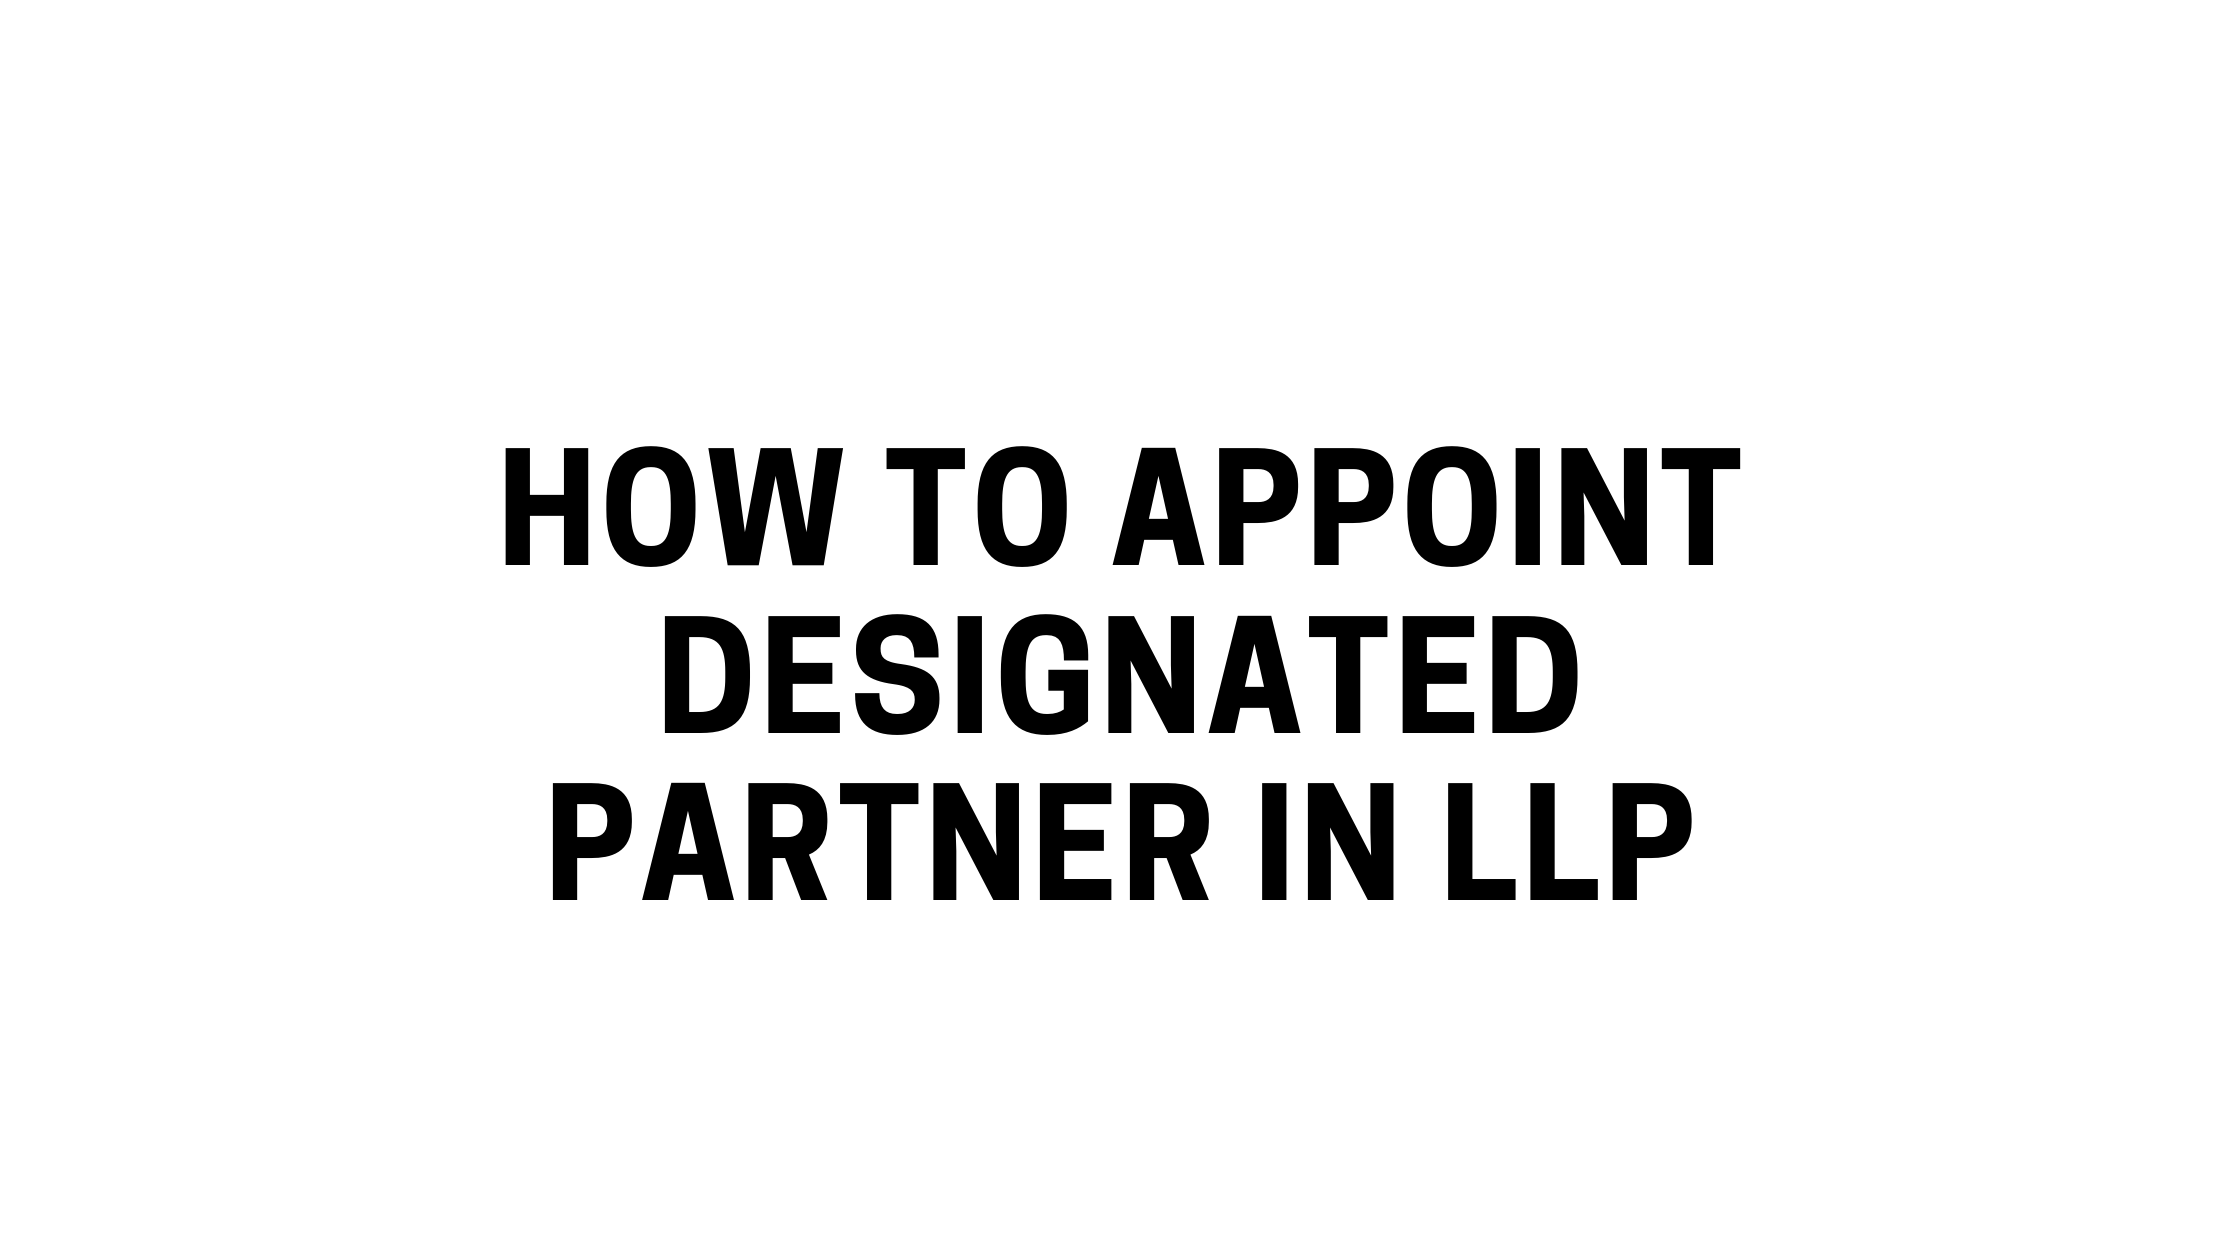 Designated Partner in LLP